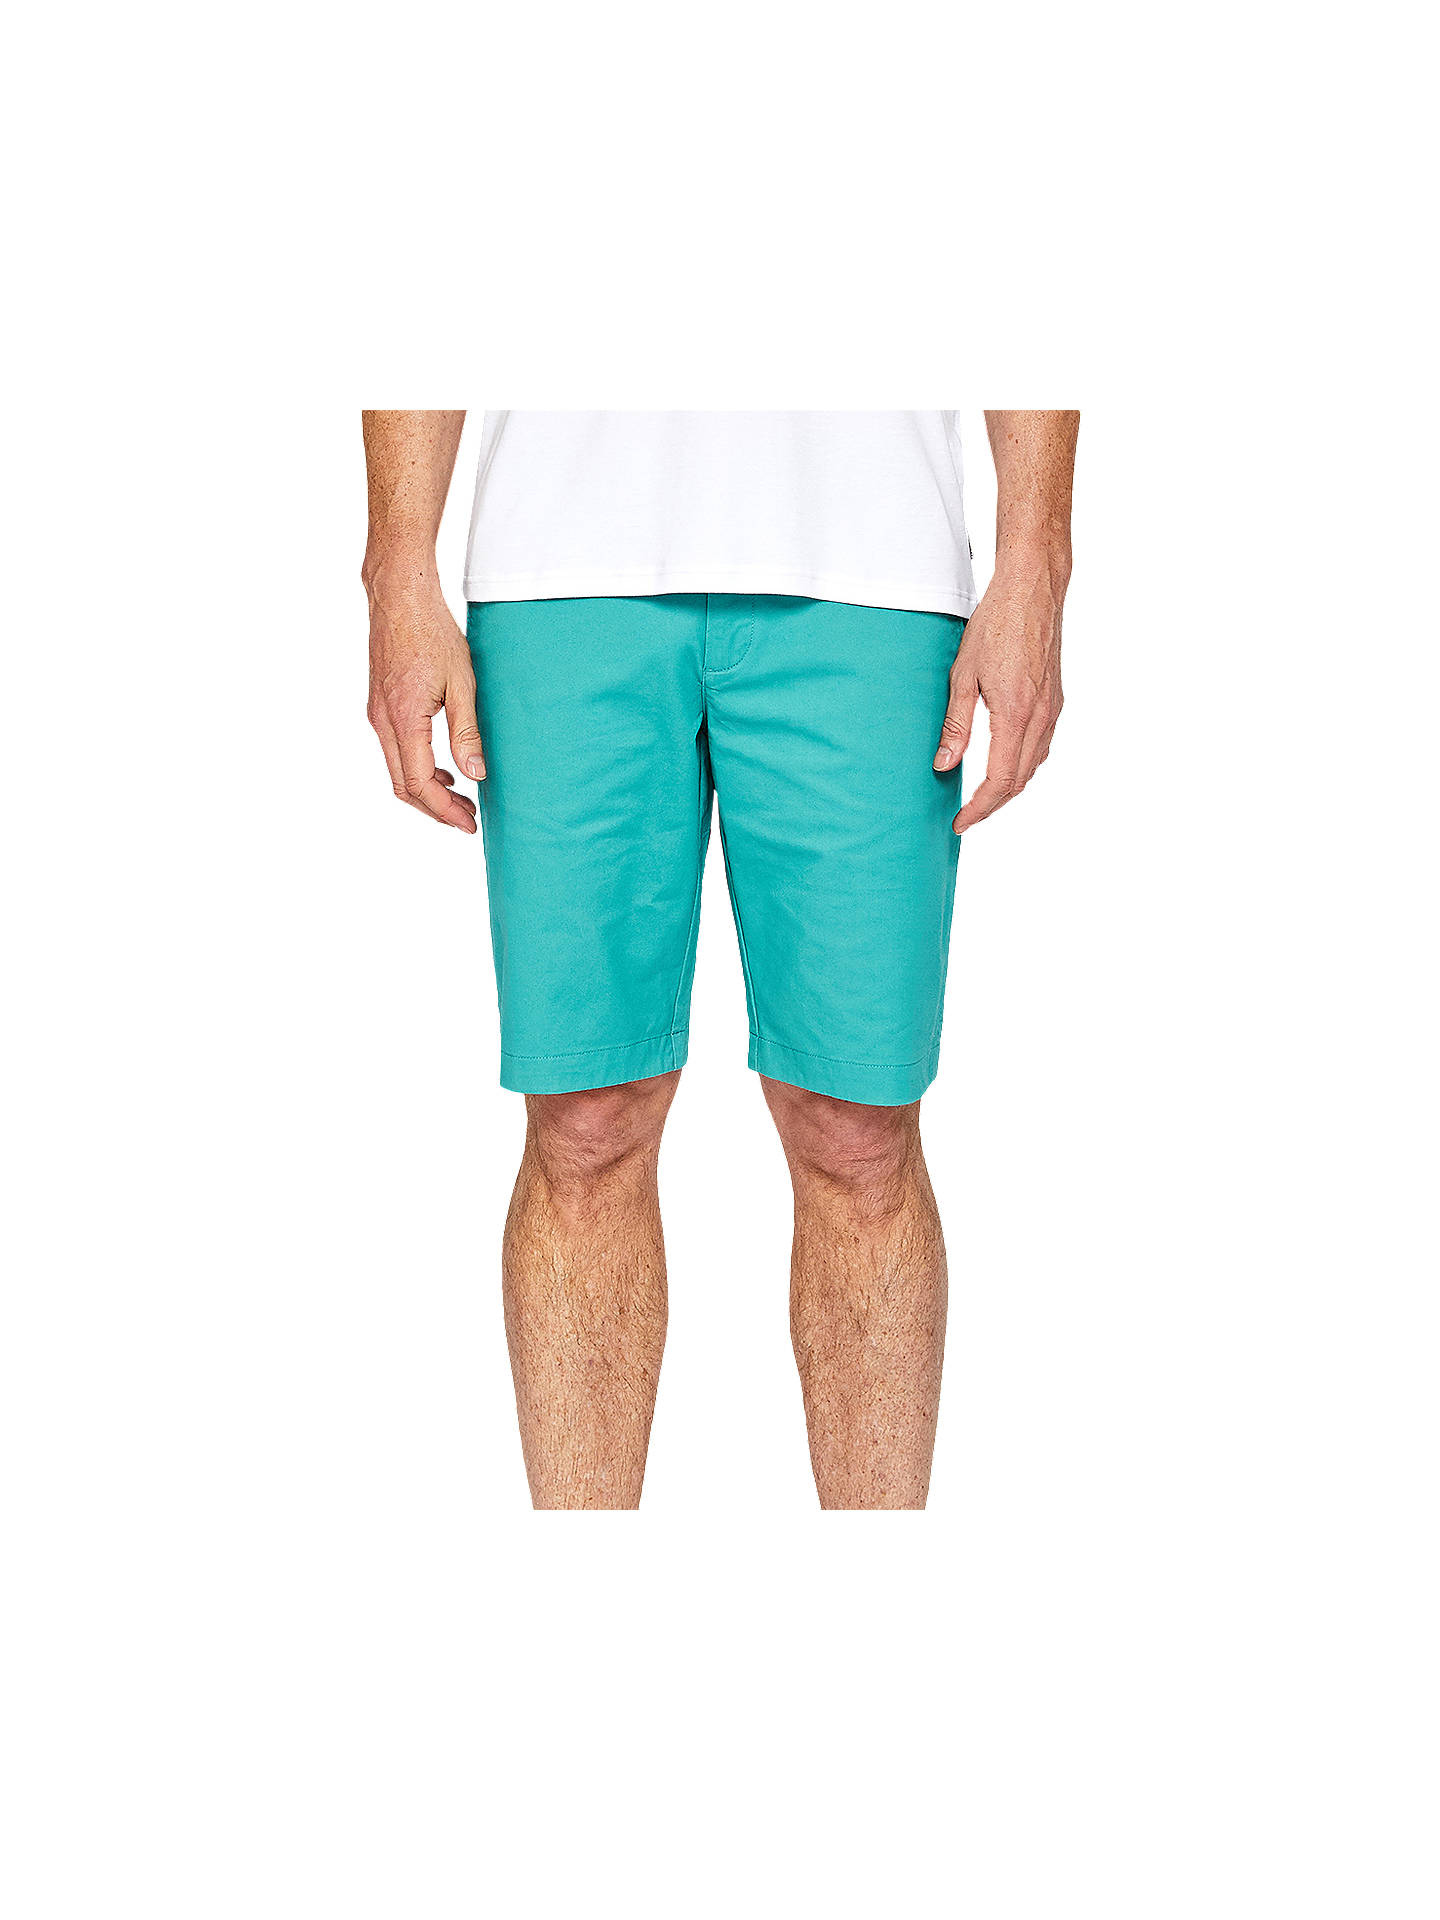 BuyTed Baker Proshor Chino Shorts, Green, 30R Online at johnlewis.com